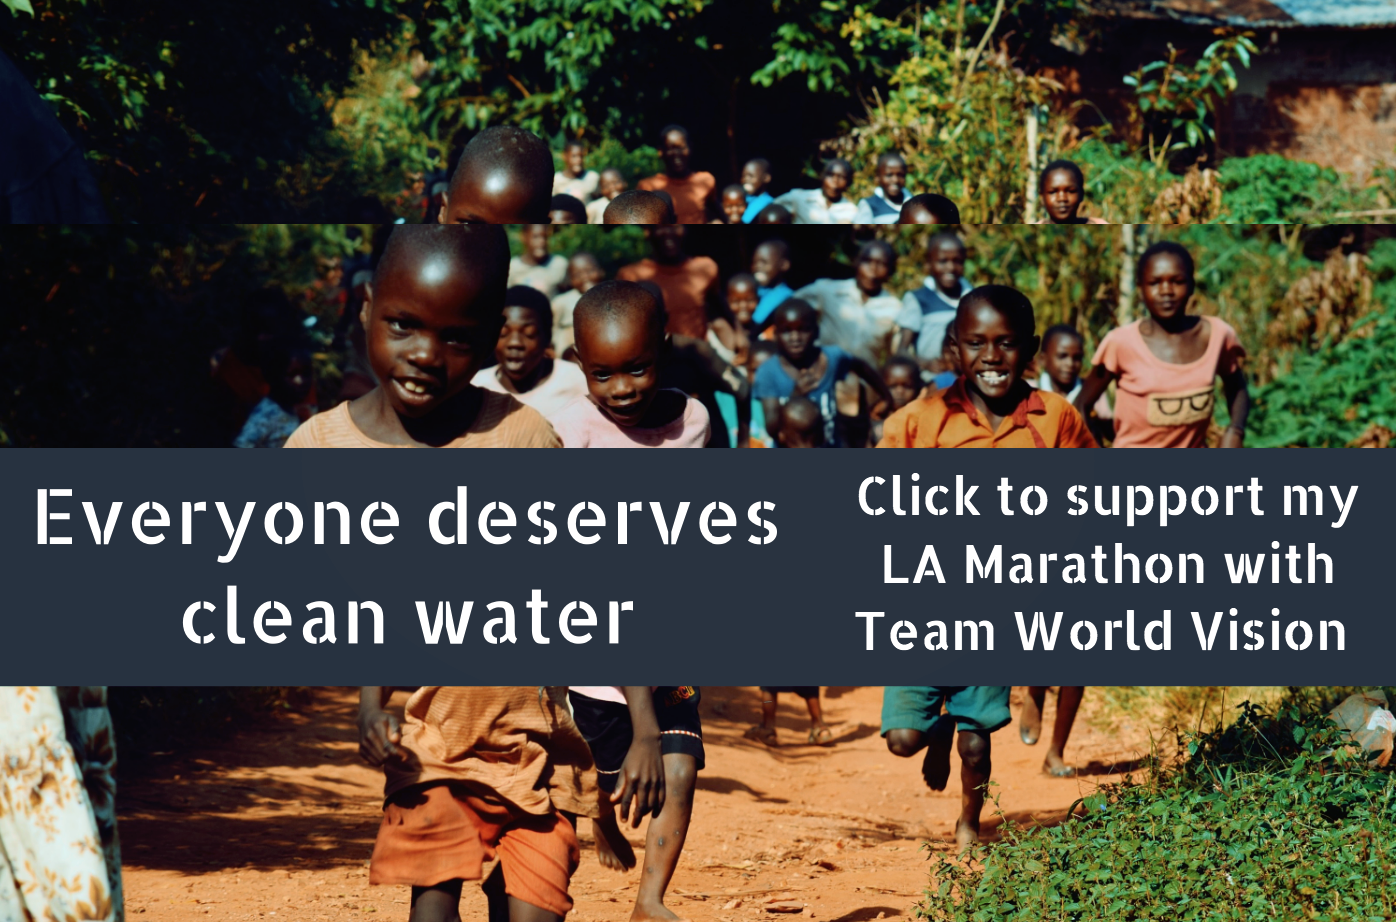 LA Marathon for clean water with Team World Vision